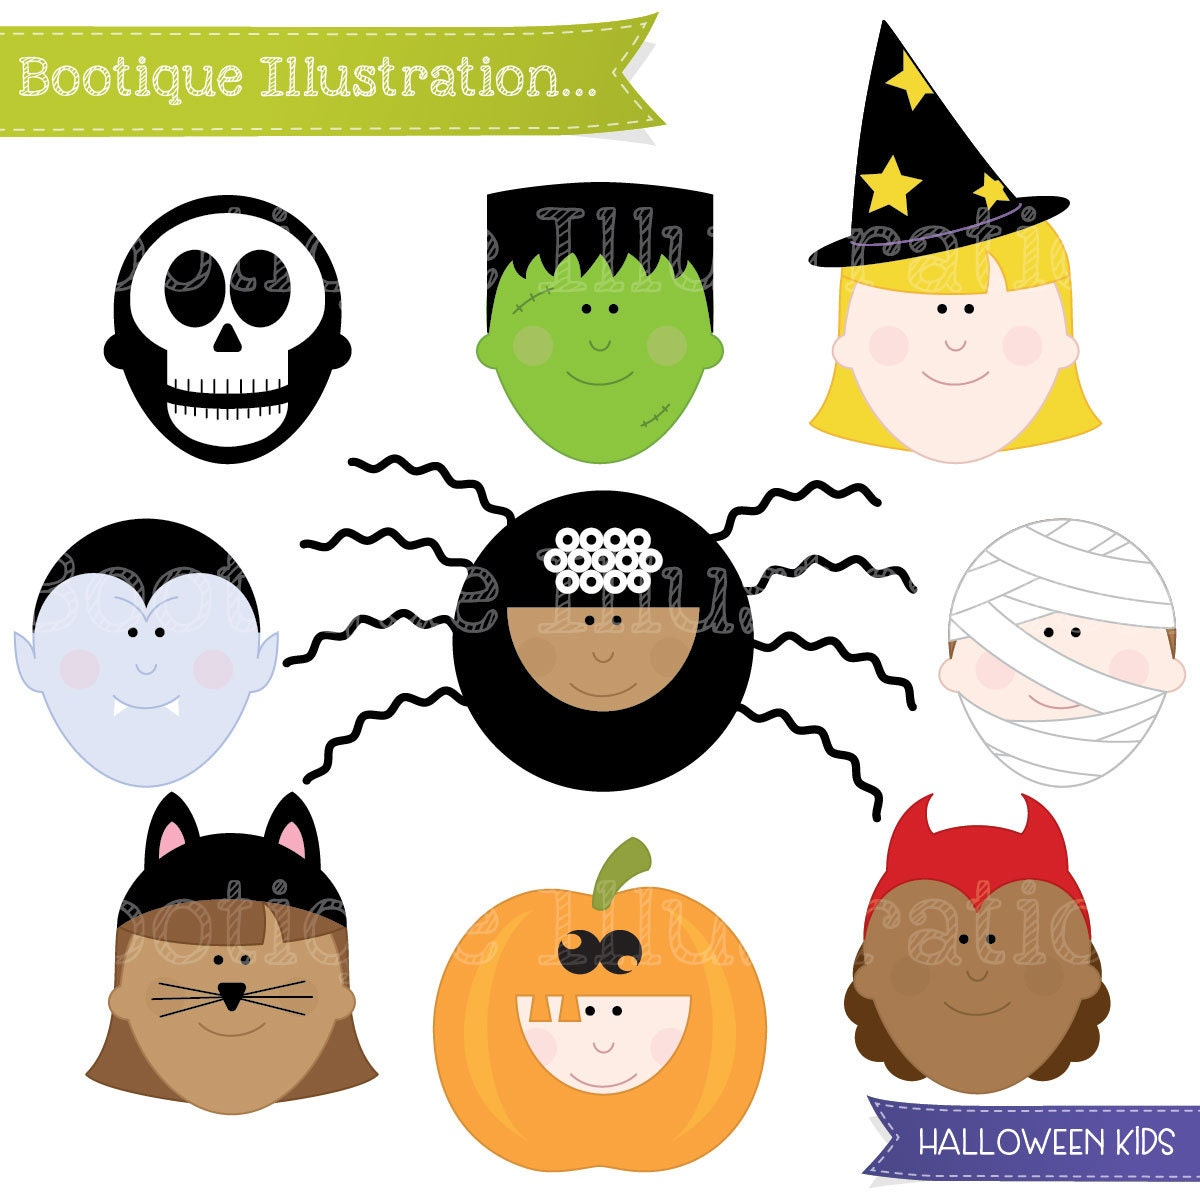 halloween clipart halloween kids clipart halloween clip art rh bootiqueillustrationclipart wordpress com